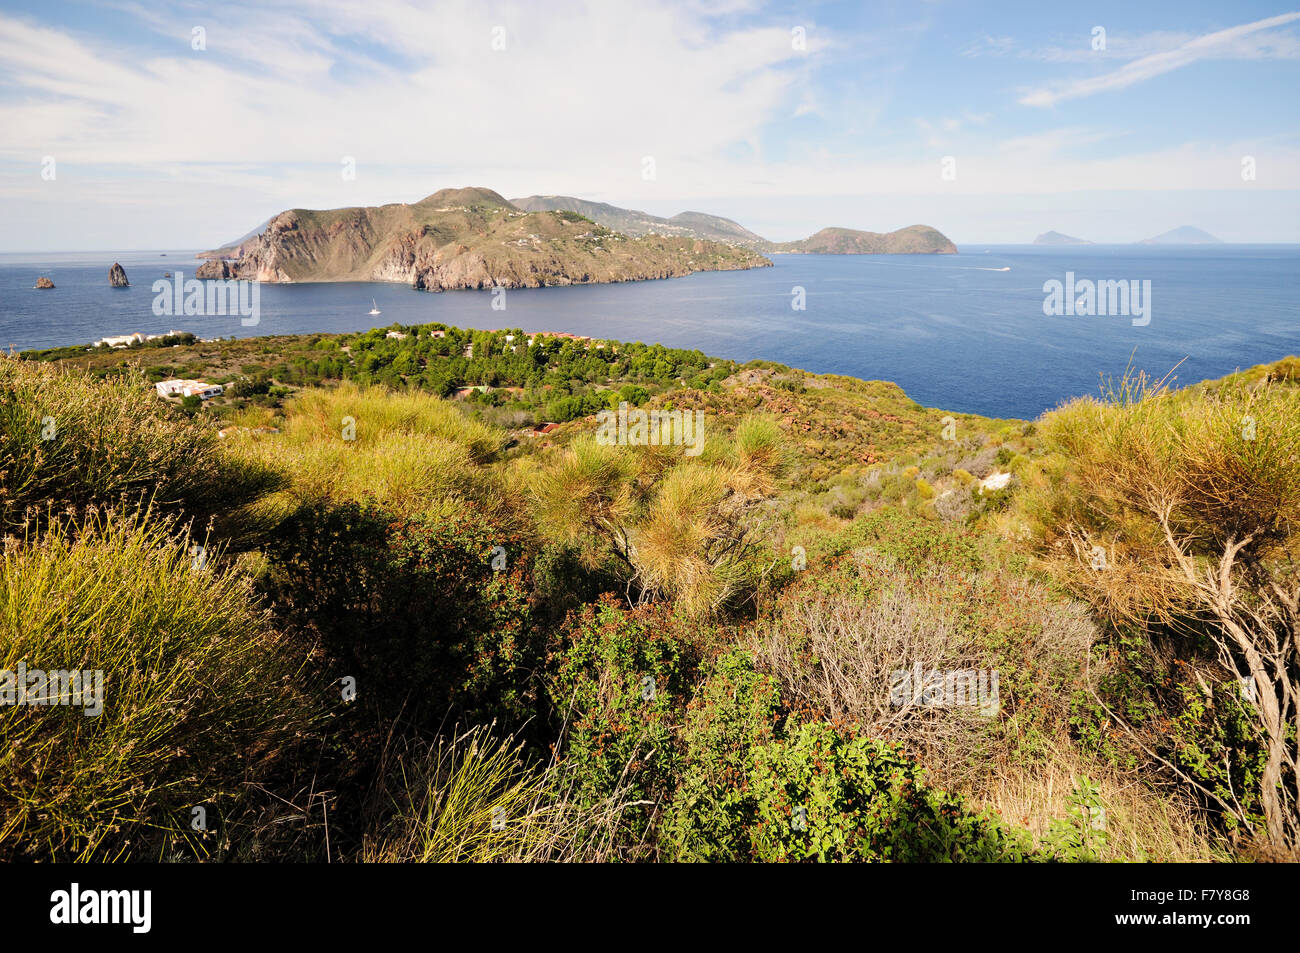 Lipari island seen from Vulcanello, Vulcano, Aeolian Islands, Sicily, Italy - Stock Image